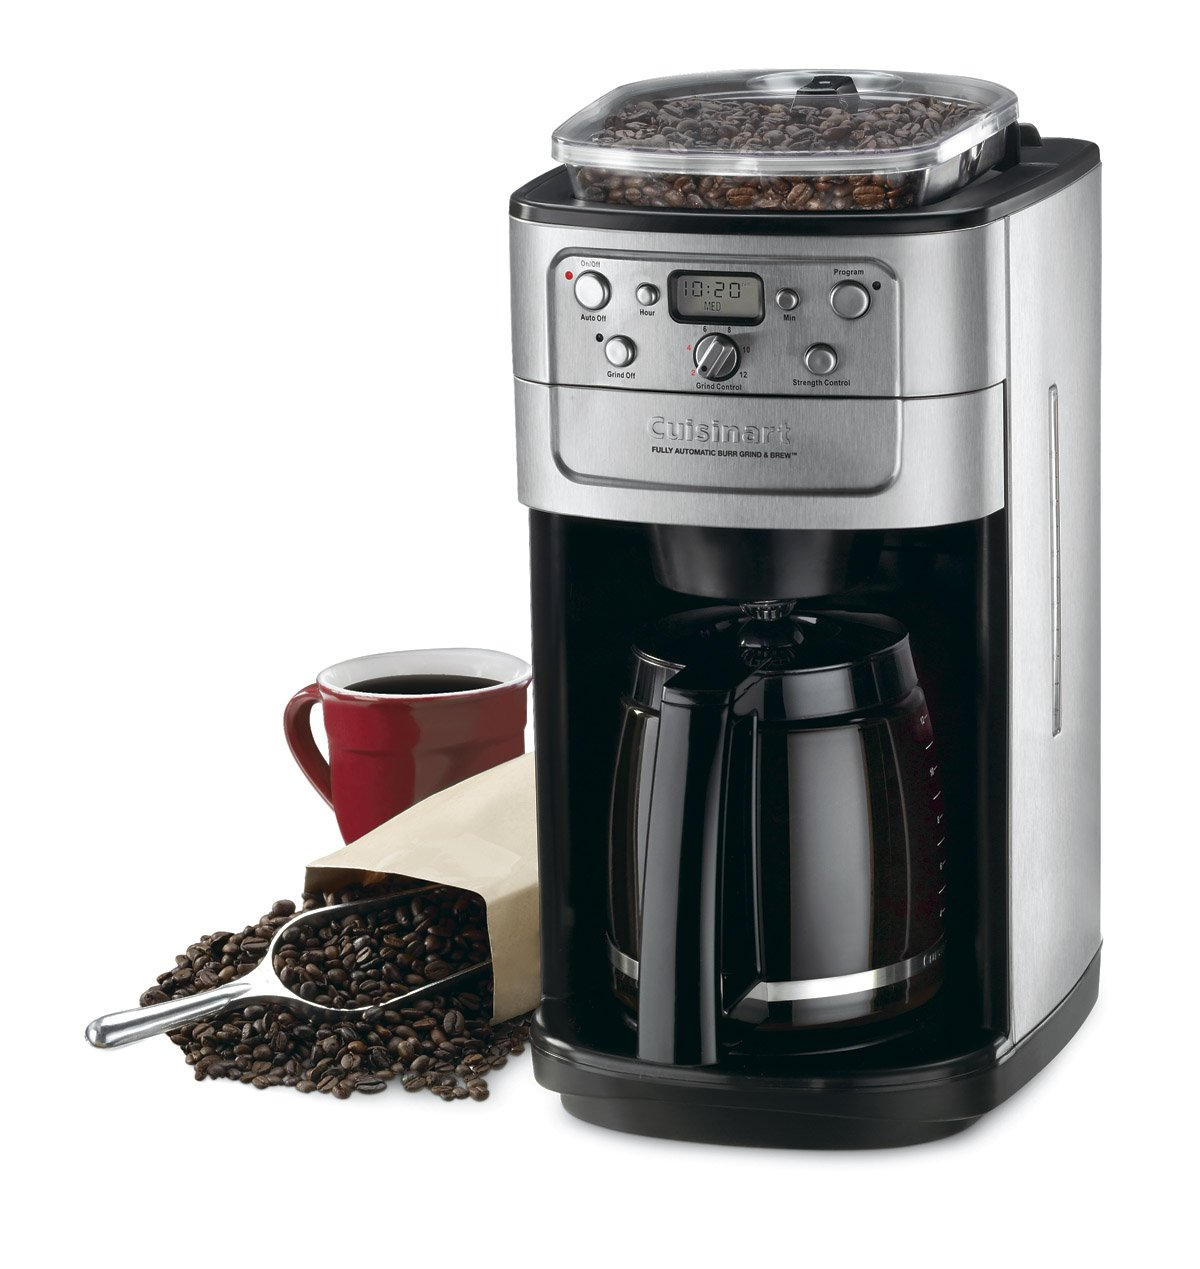 Conair Cuisinart Grind & Brew DGB-700BC 12 Cup Coffeemaker (Black/Brushed Chrome) by Cuisinart (Image #3)